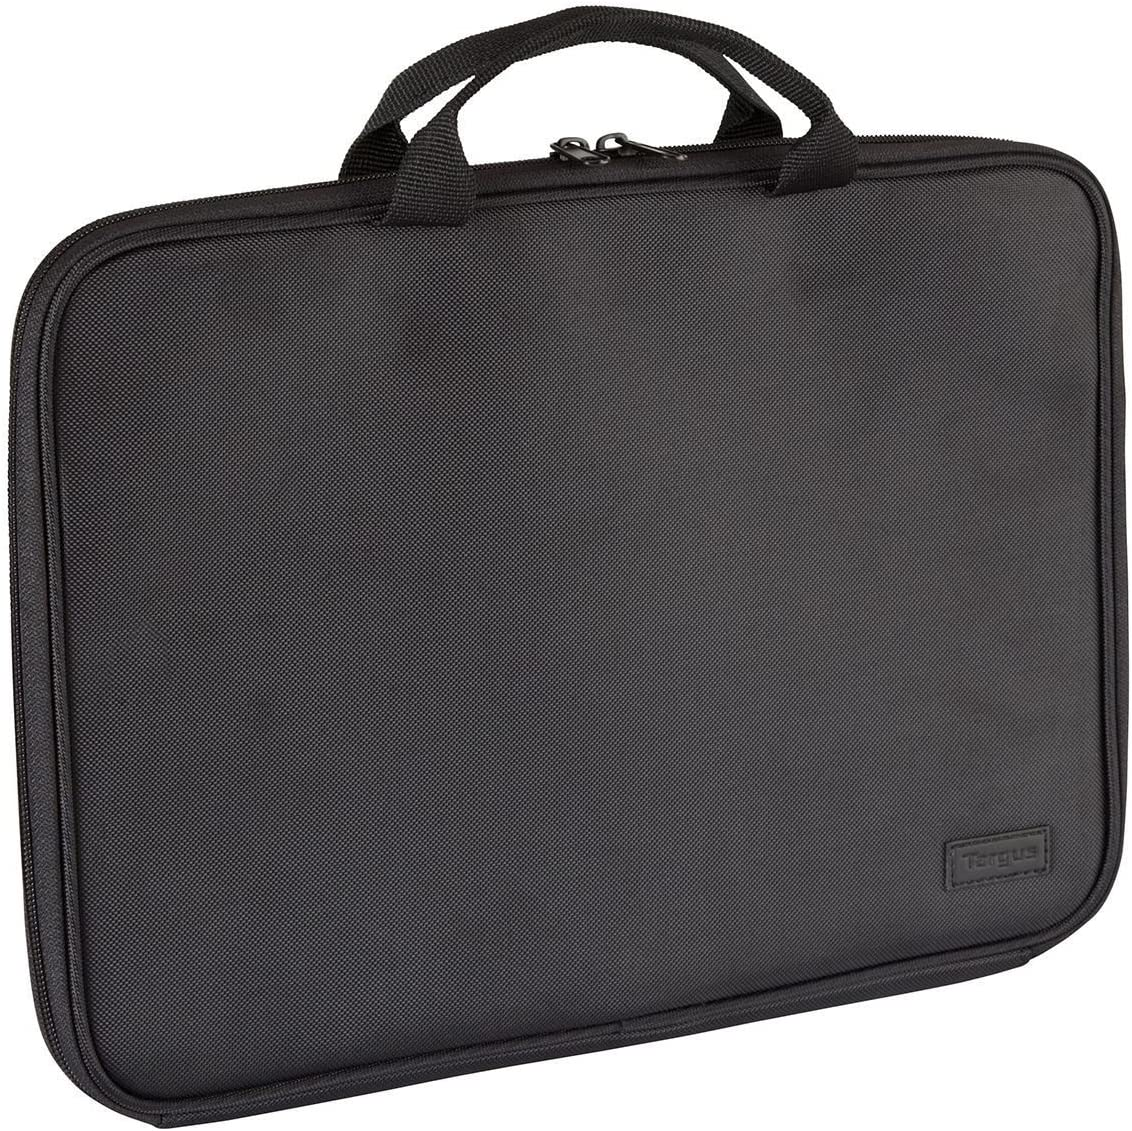 Targus Clamshell Laptop Bag specifically Designed to fit up to 13.3-Inch, Black (OBC003EU)